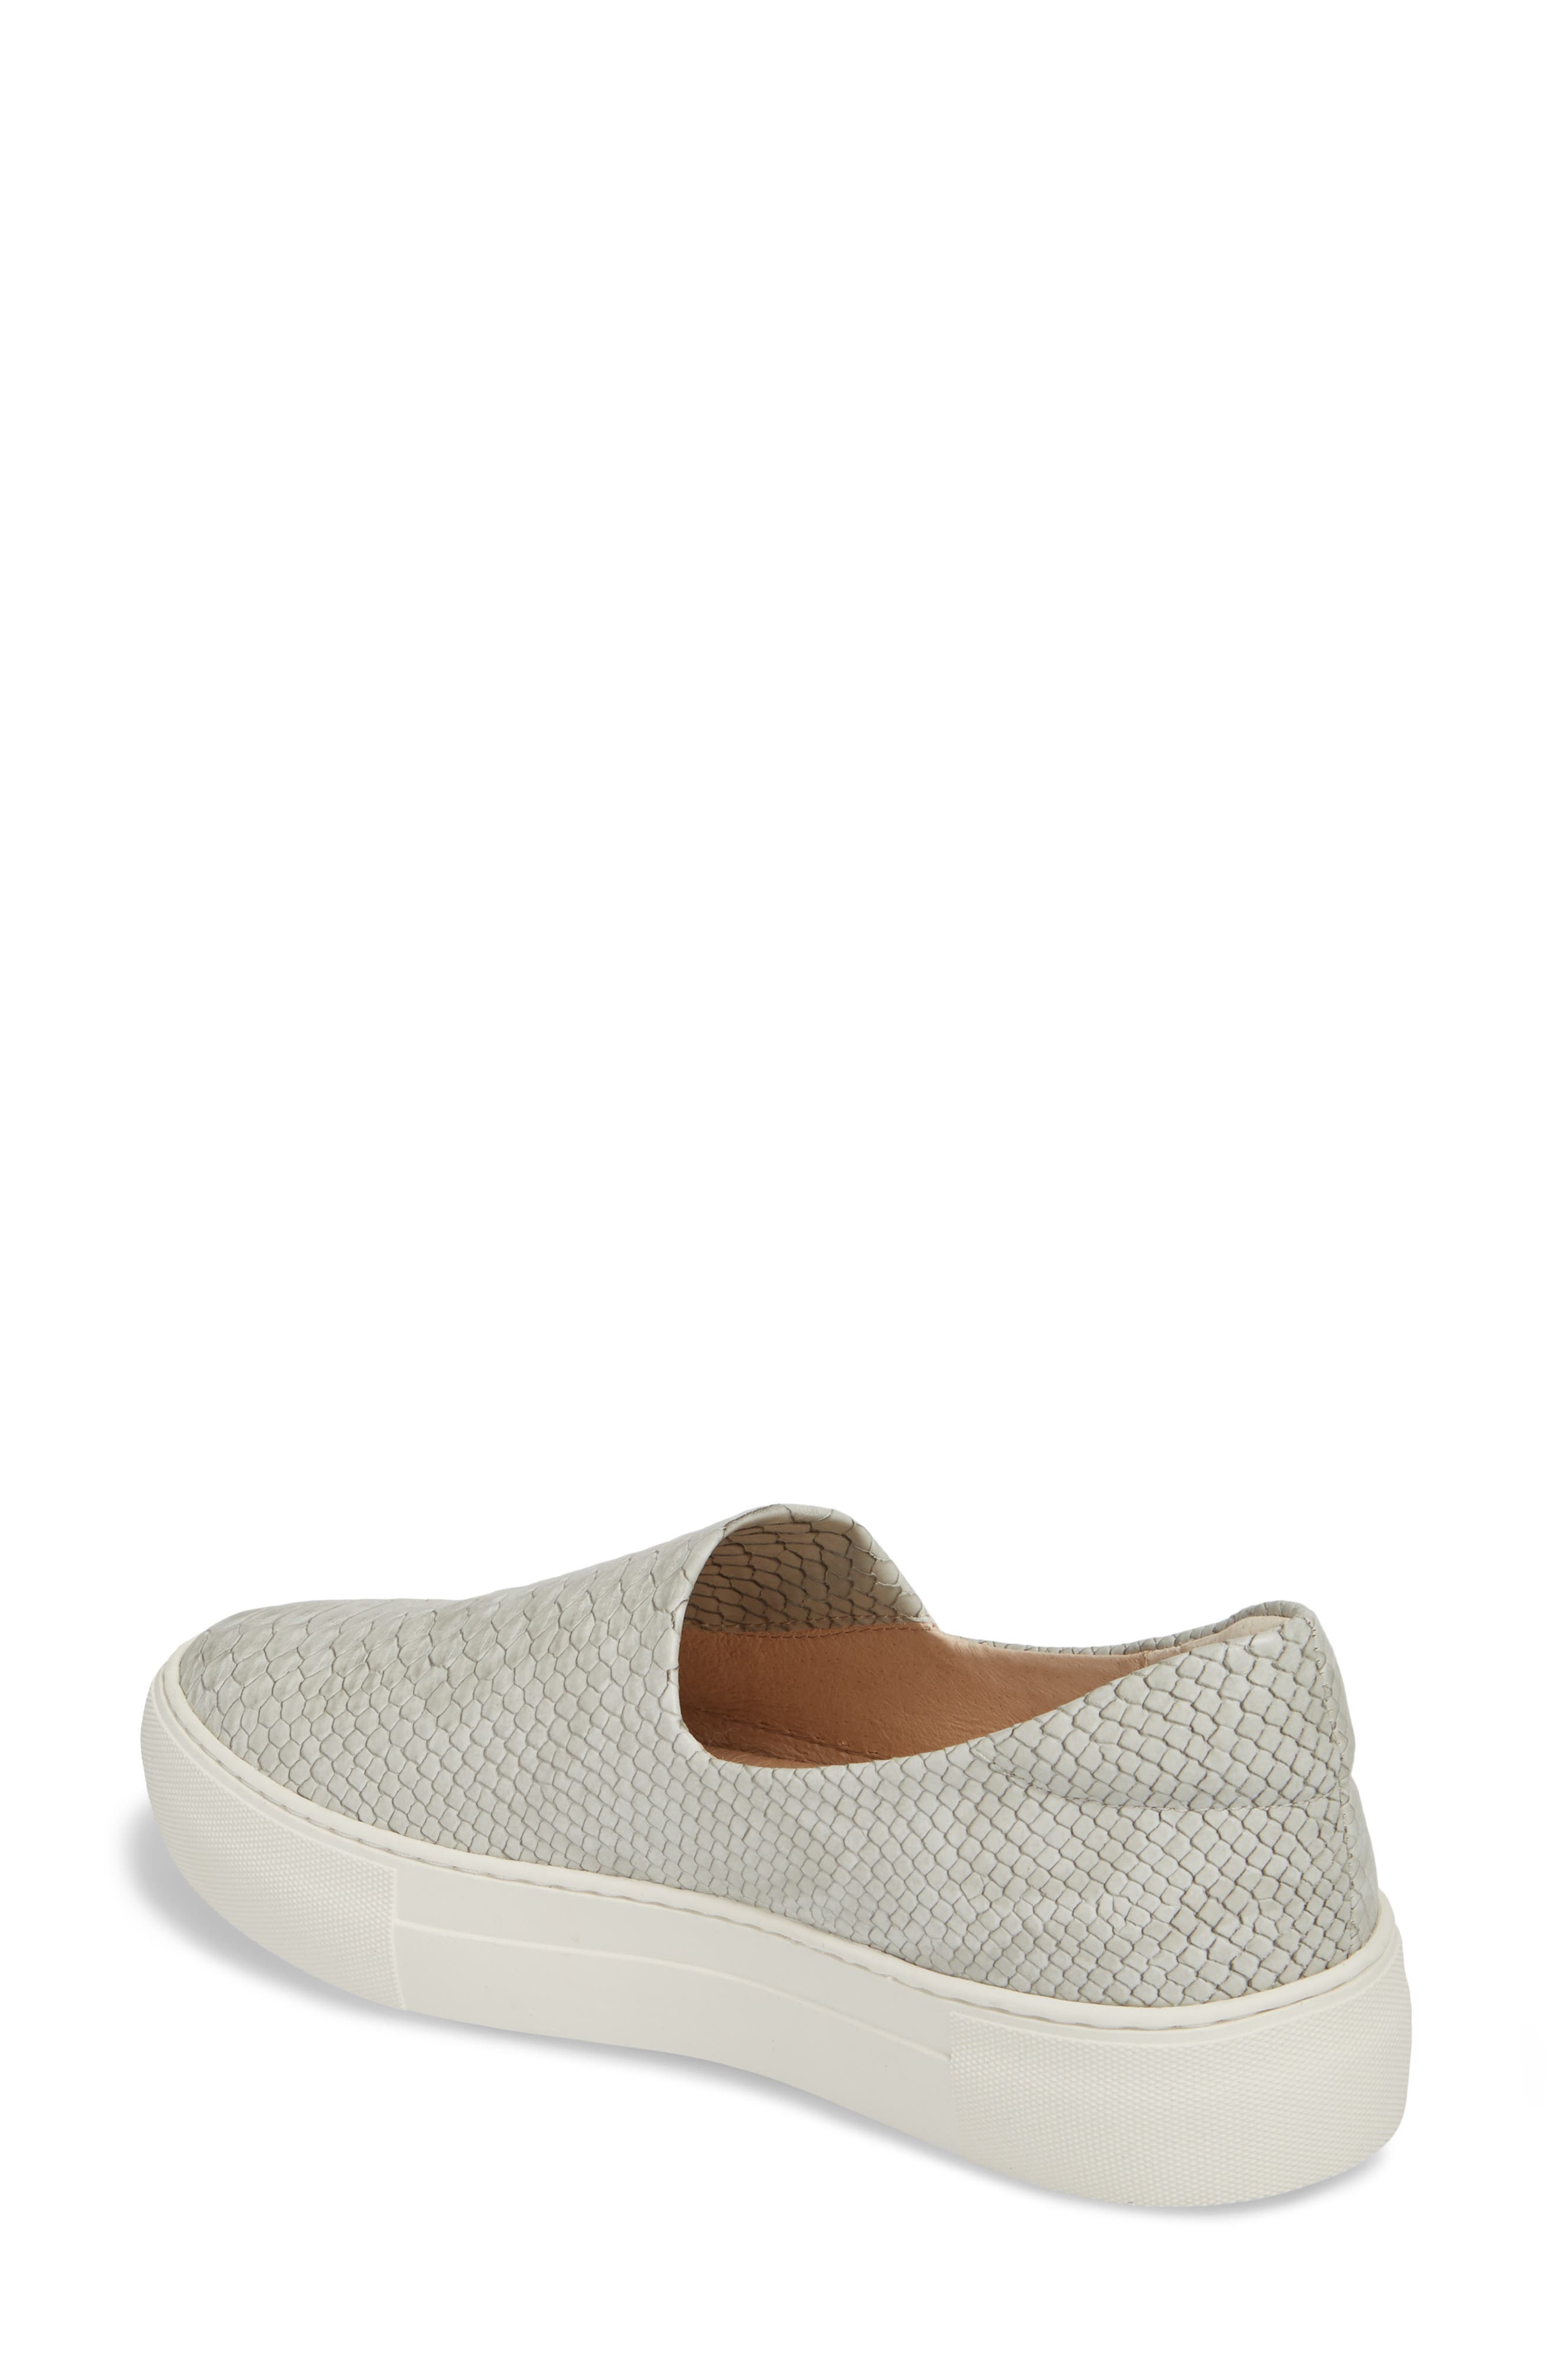 Read more Beige & Pink Suede One Slip-On Sneakers mSjOqqWlJ